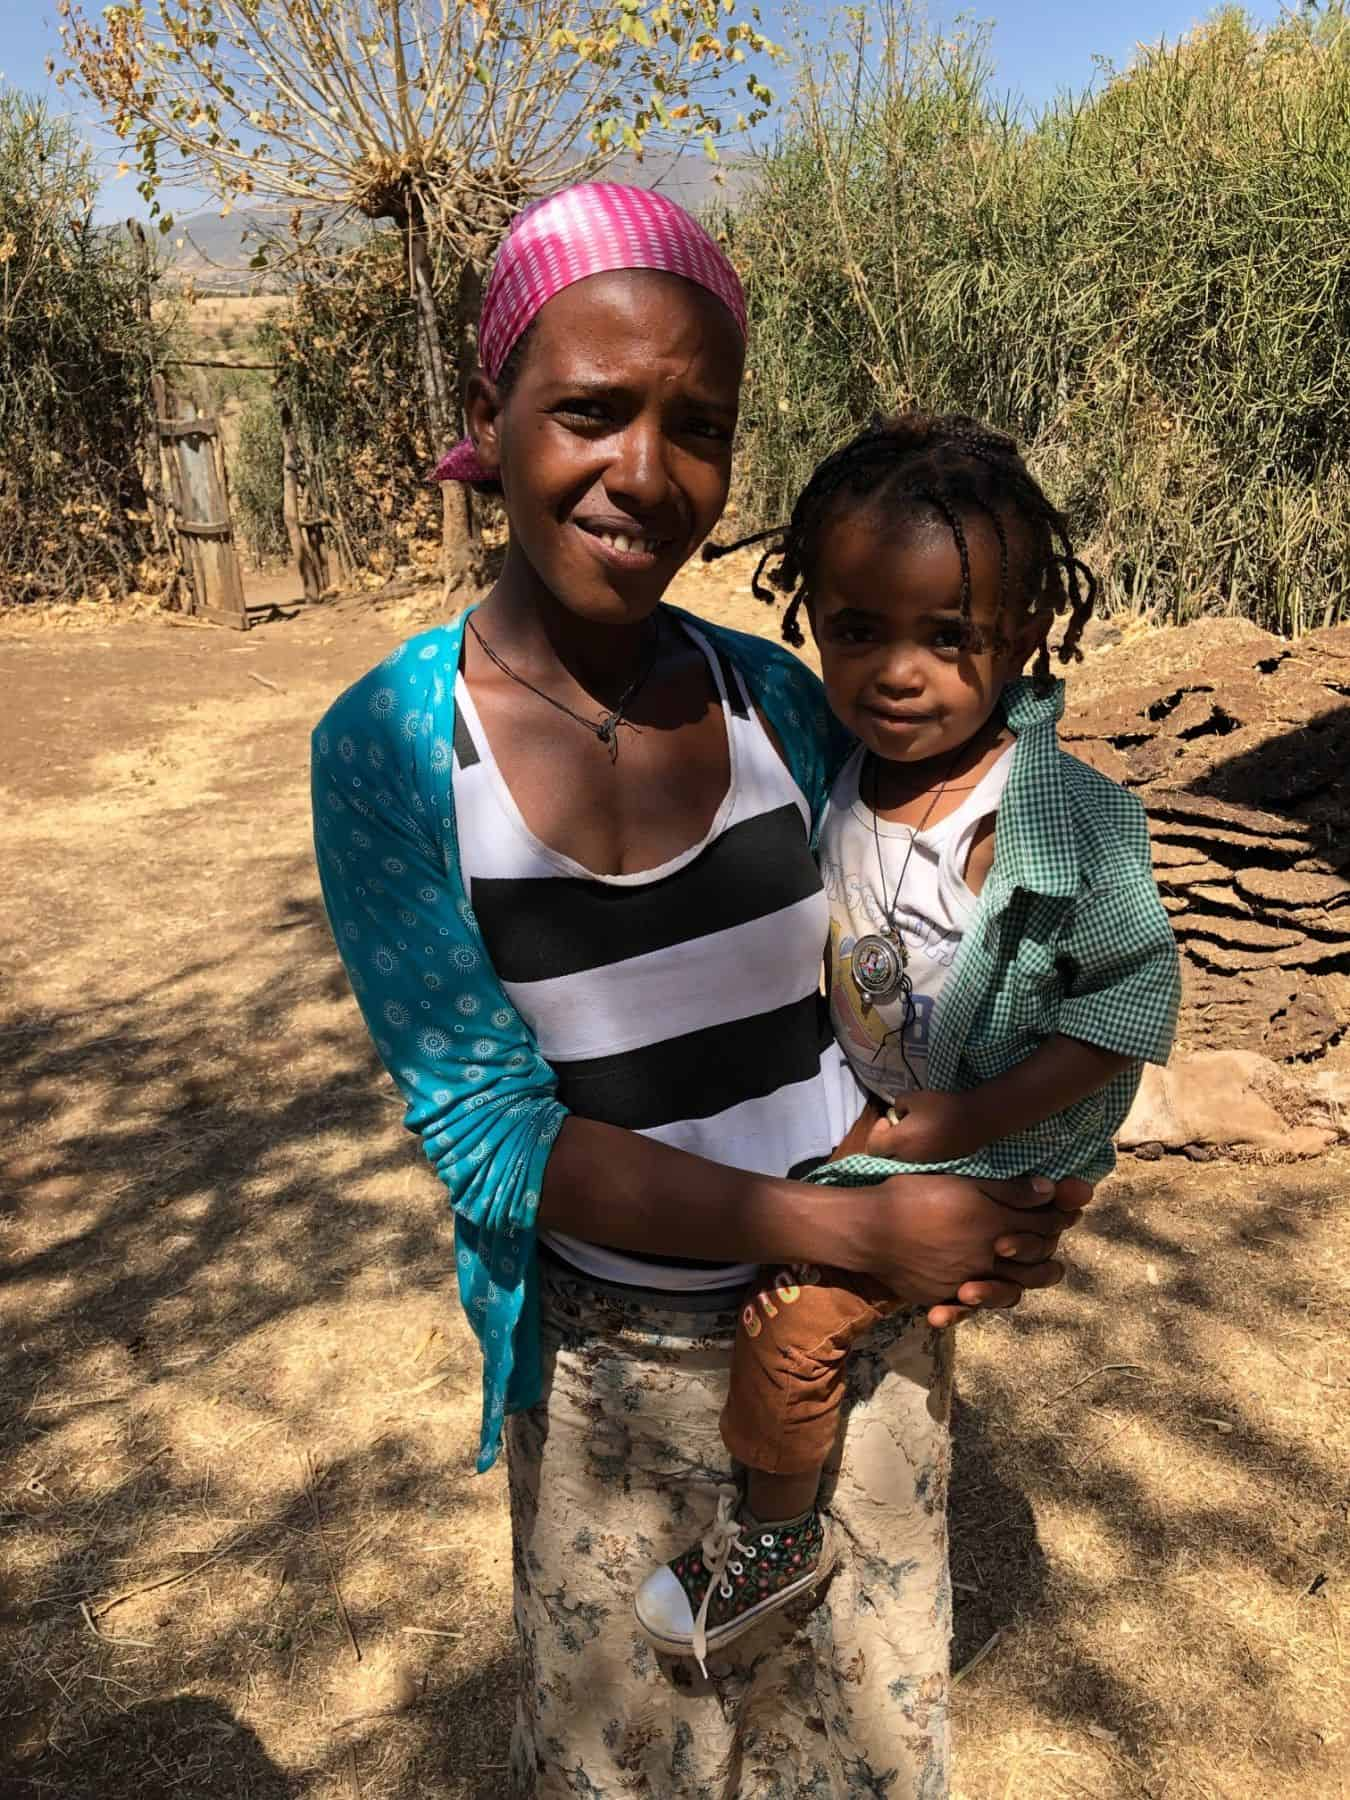 Frealem Eshetu holds her young daughter, the third generation in her family to benefit from the same 20-year-old BioSand Filter.